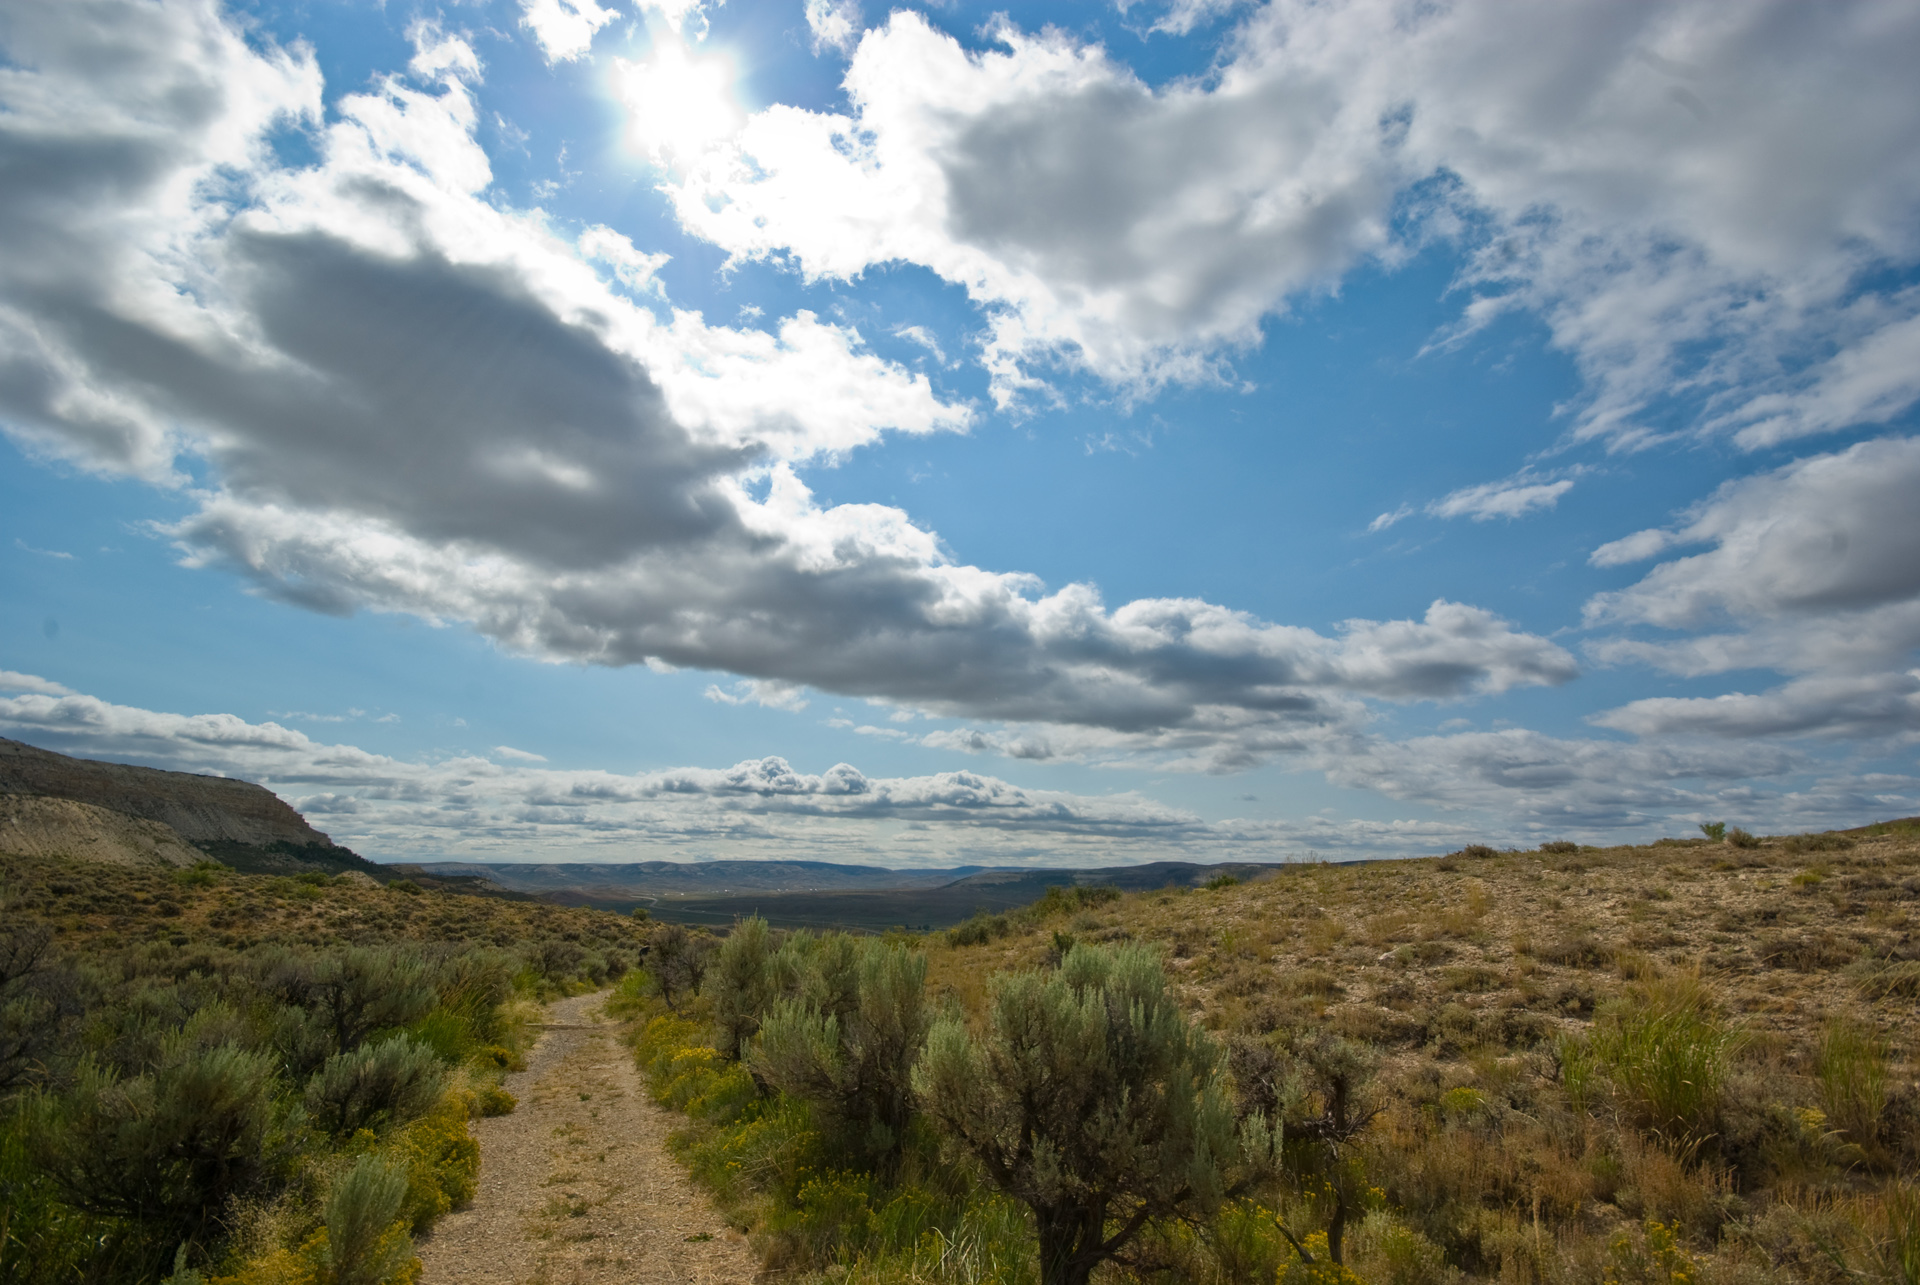 Wyoming landscape pentax user photo gallery for On landscape